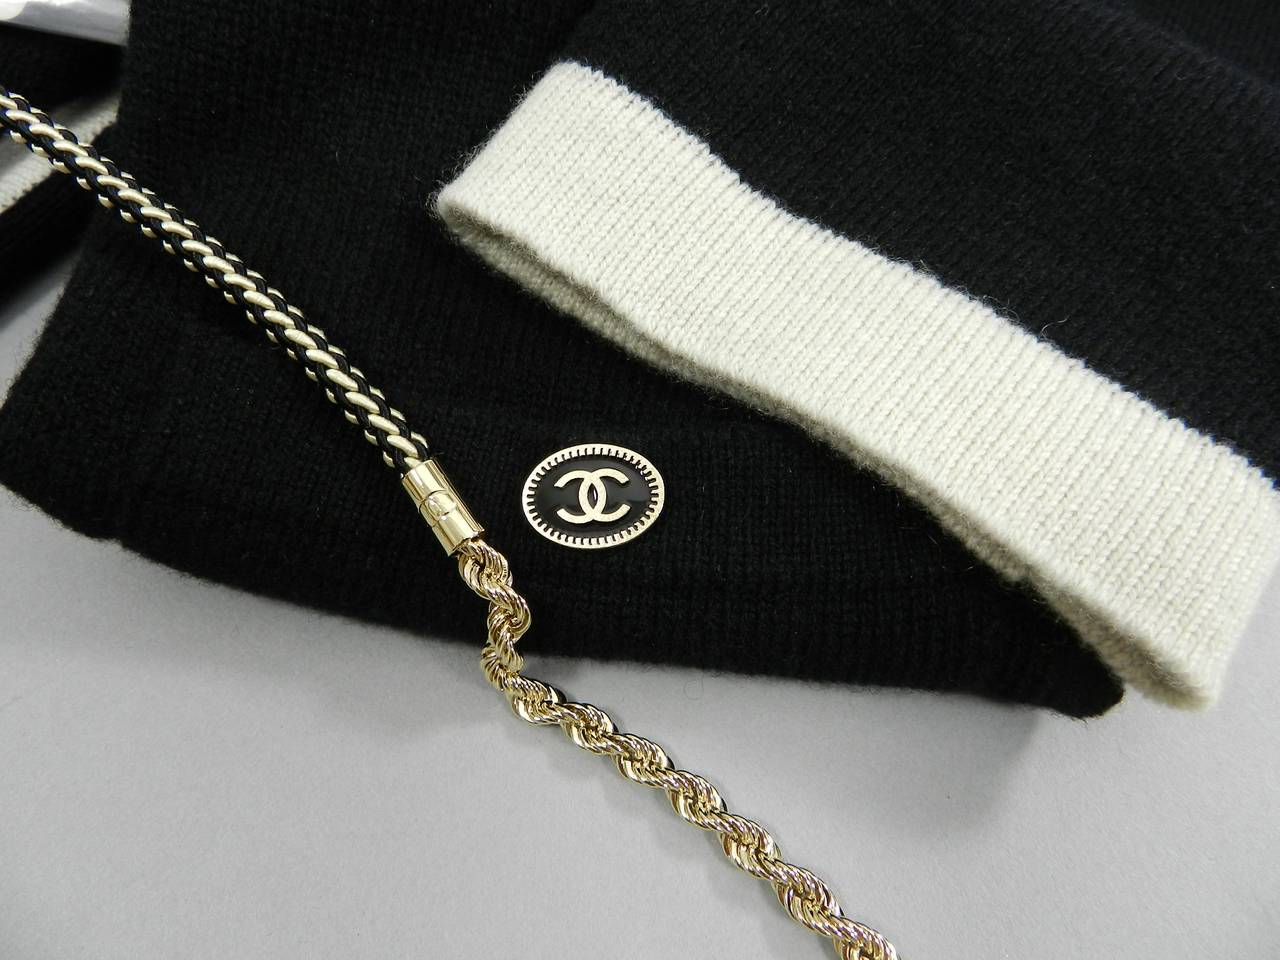 Chanel 11P Black Cashmere Cardigan with Gold Chain 7